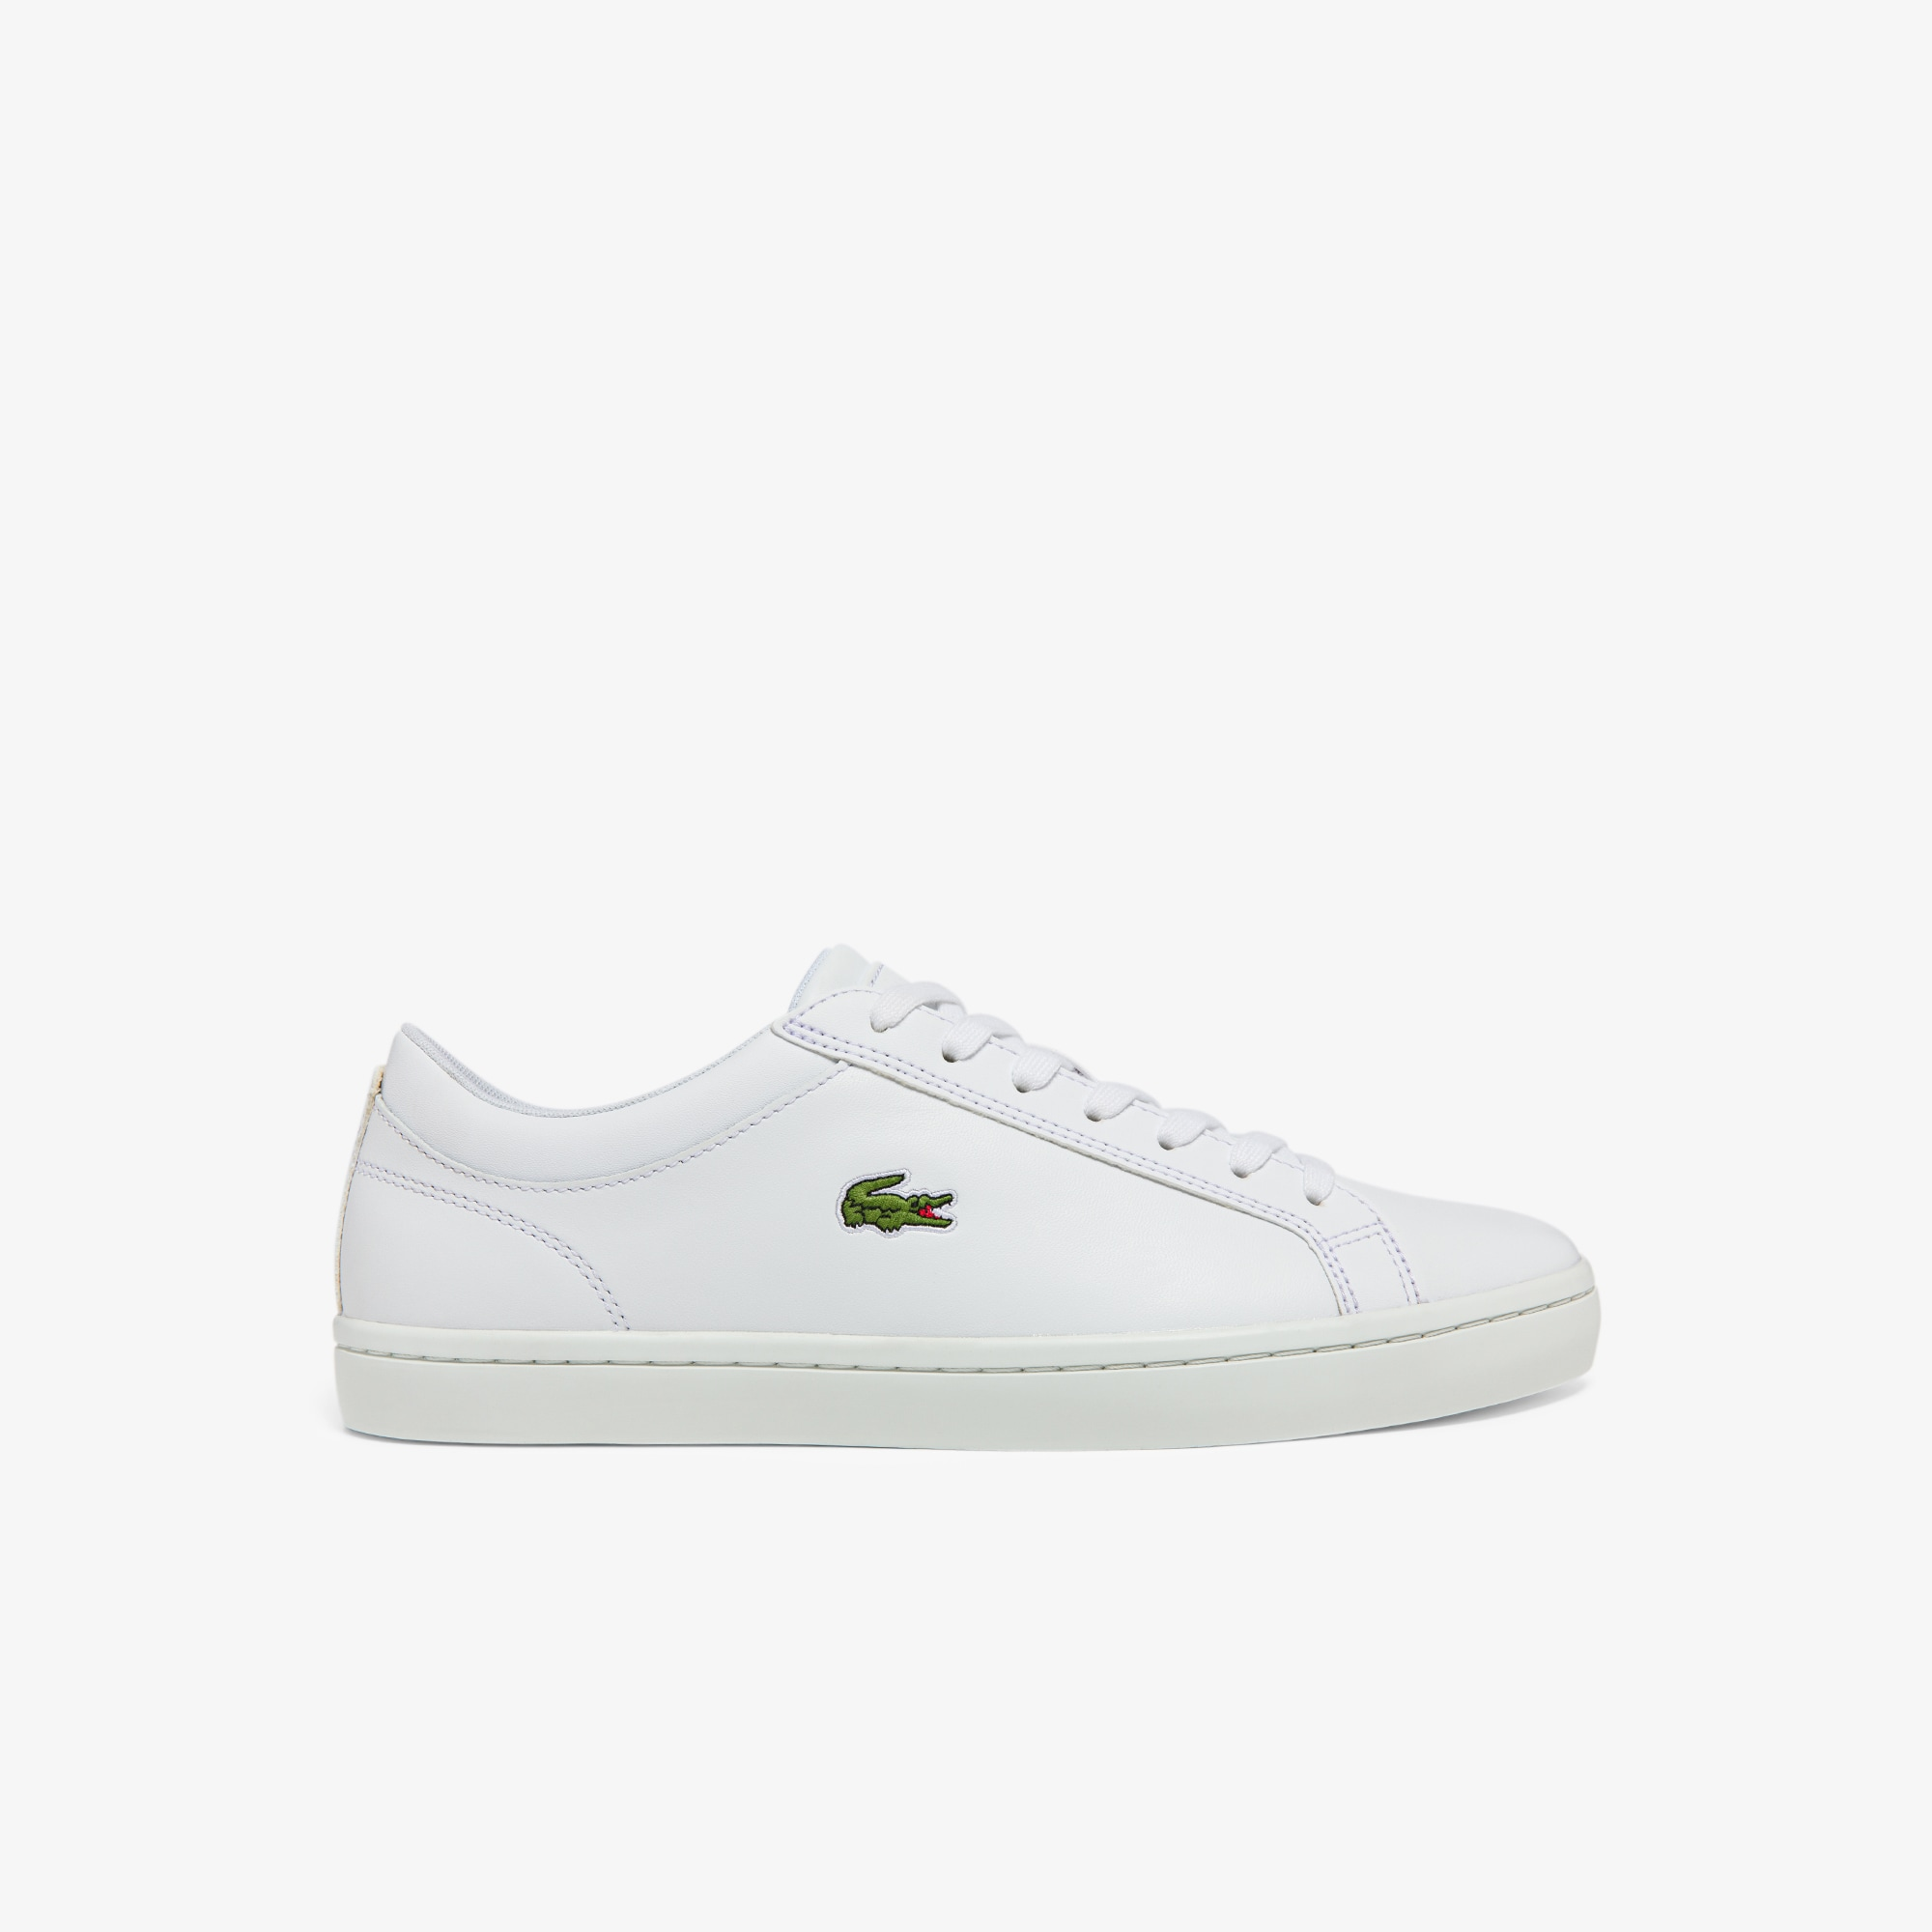 a9b50bcc41c5 Men s Straightset Leather Sneakers